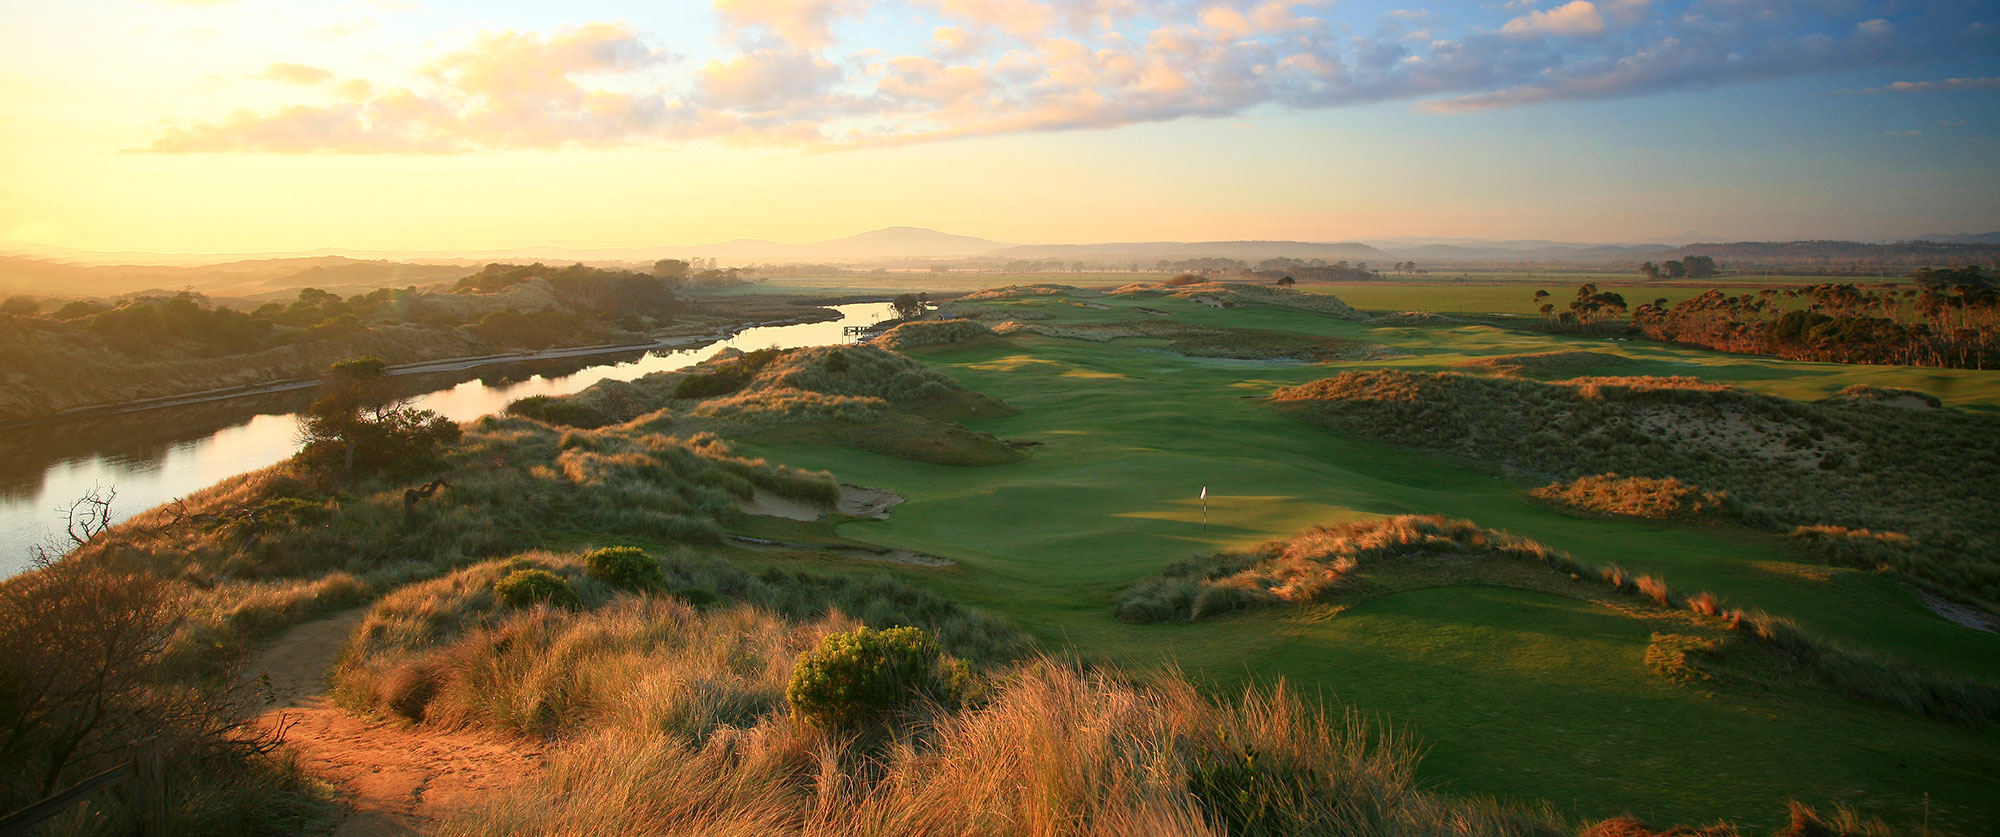 Barnbougle Dunes - Getaways Australia: Great Golf Courses of Australia - Top 100 Golf Courses - Golf vacation specialists Australia